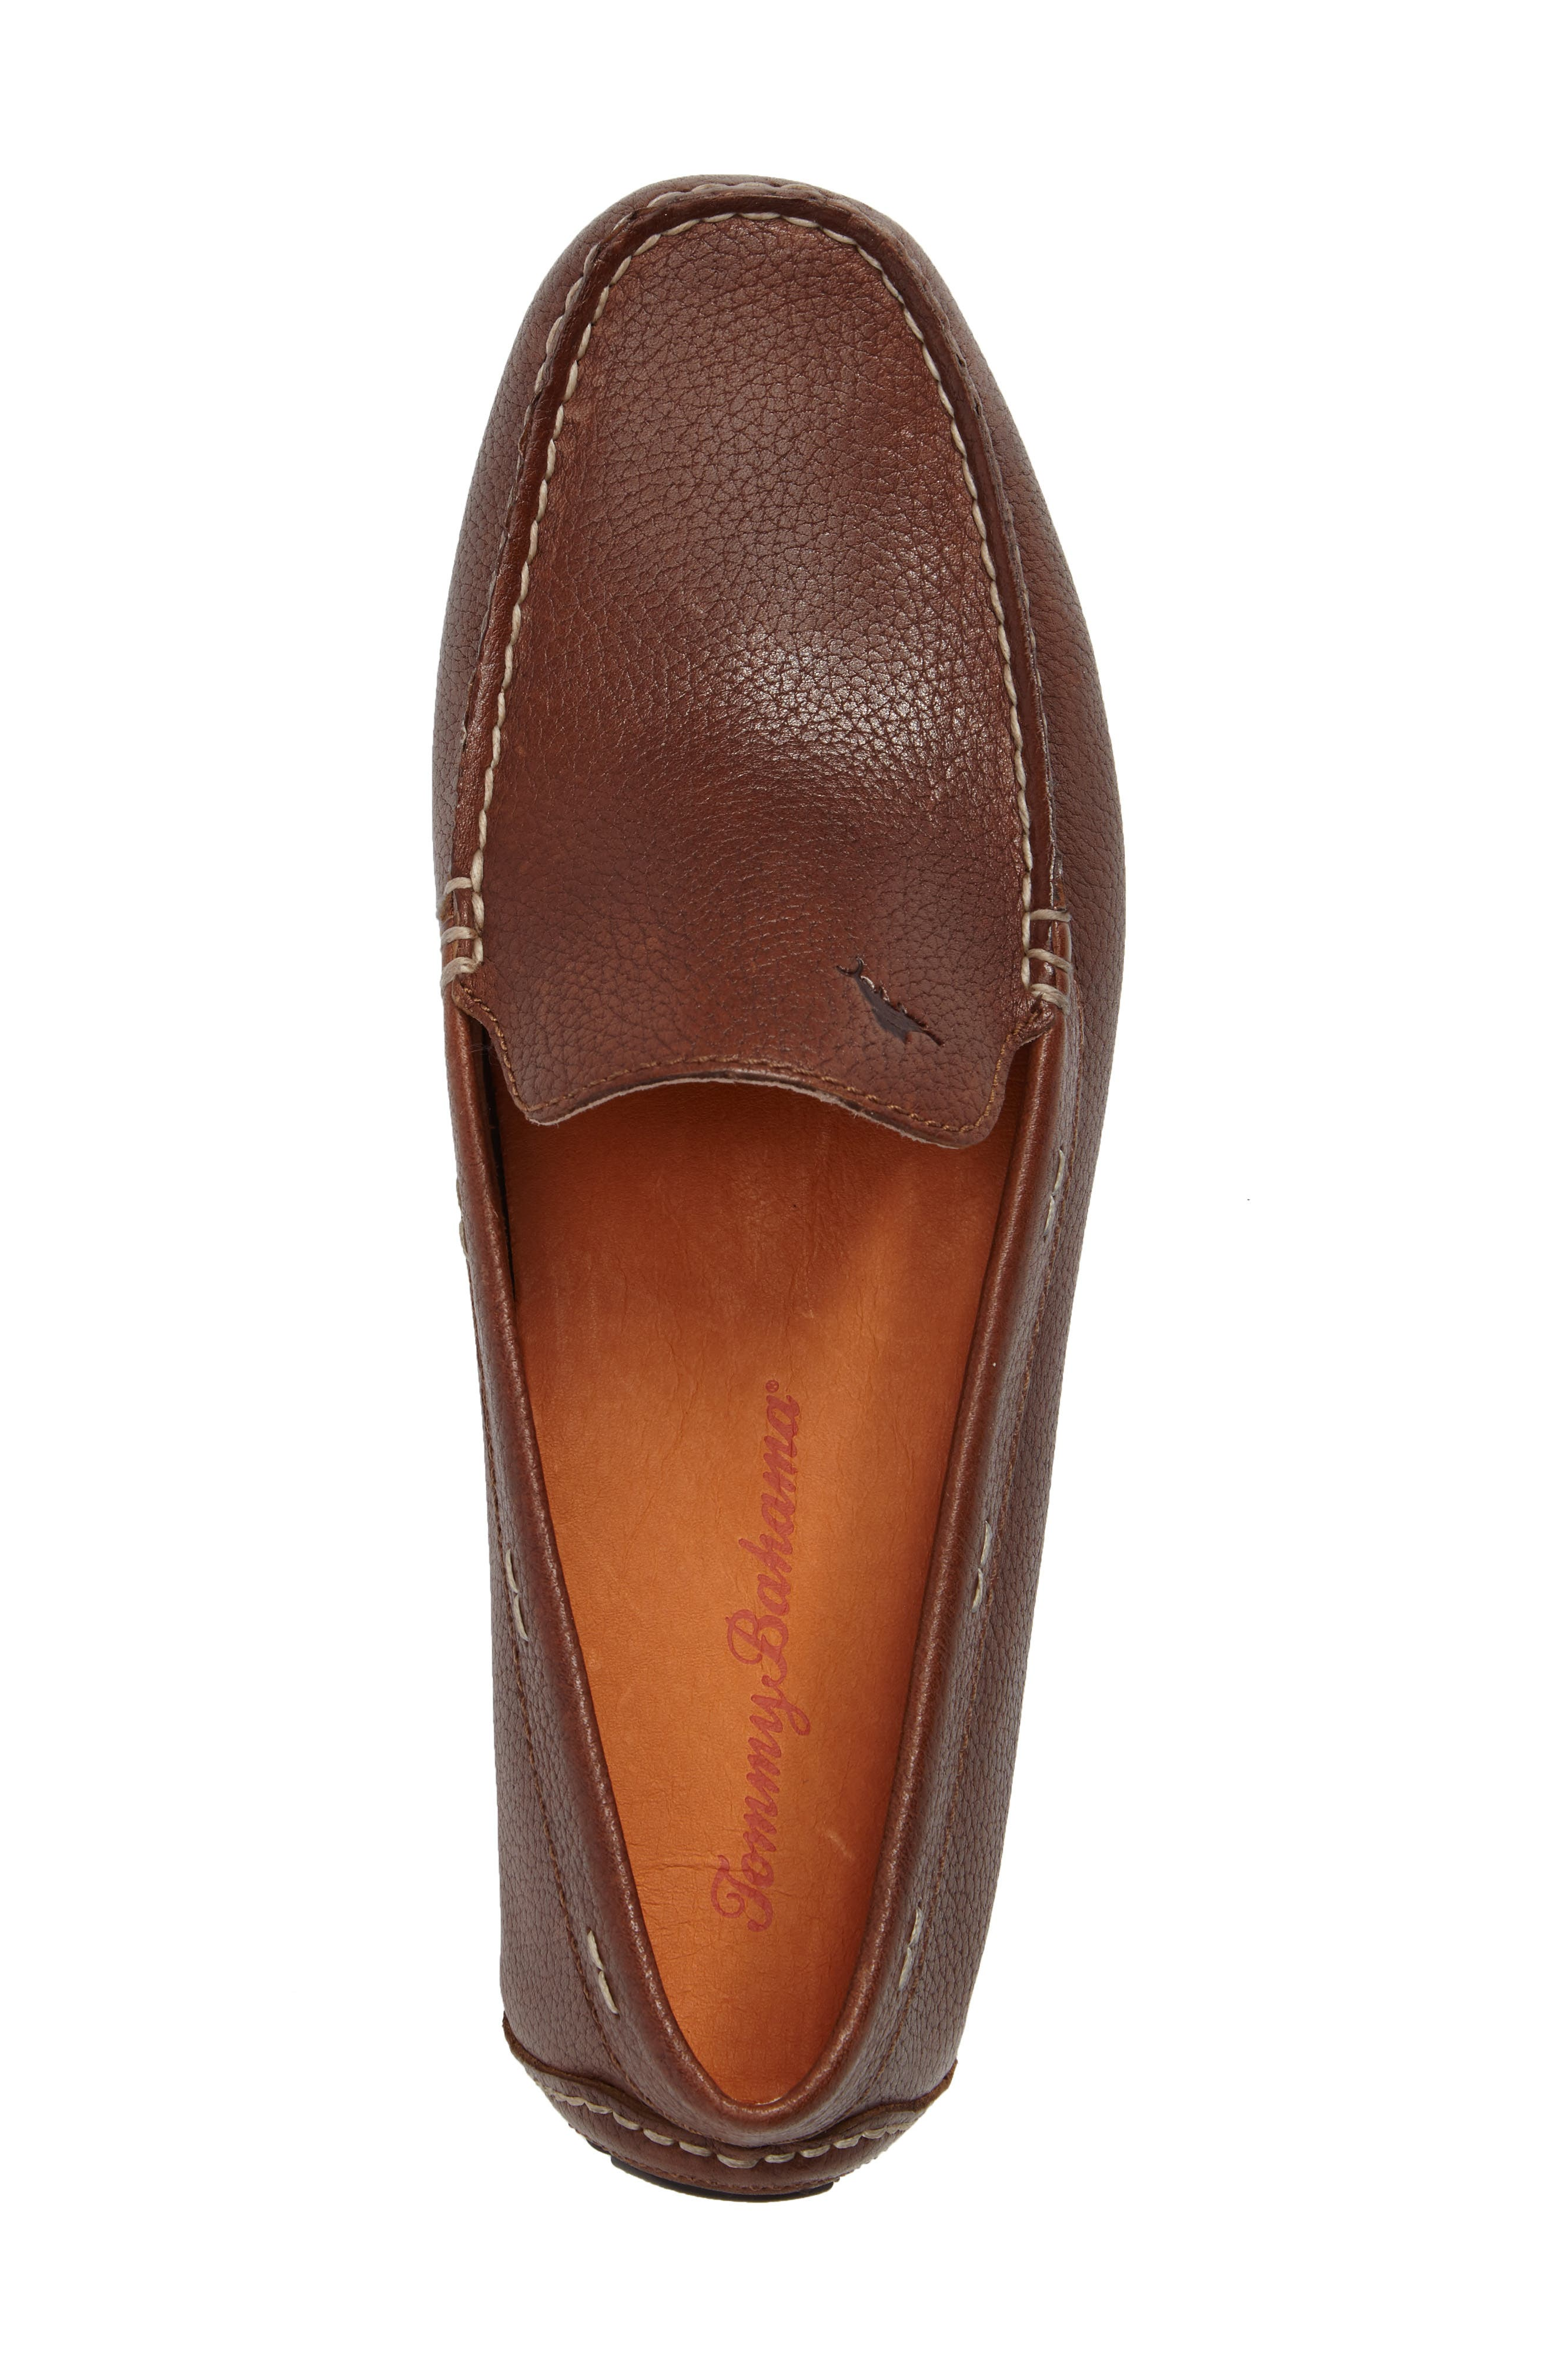 Pagota Driving Loafer,                             Alternate thumbnail 5, color,                             DARK BROWN LEATHER